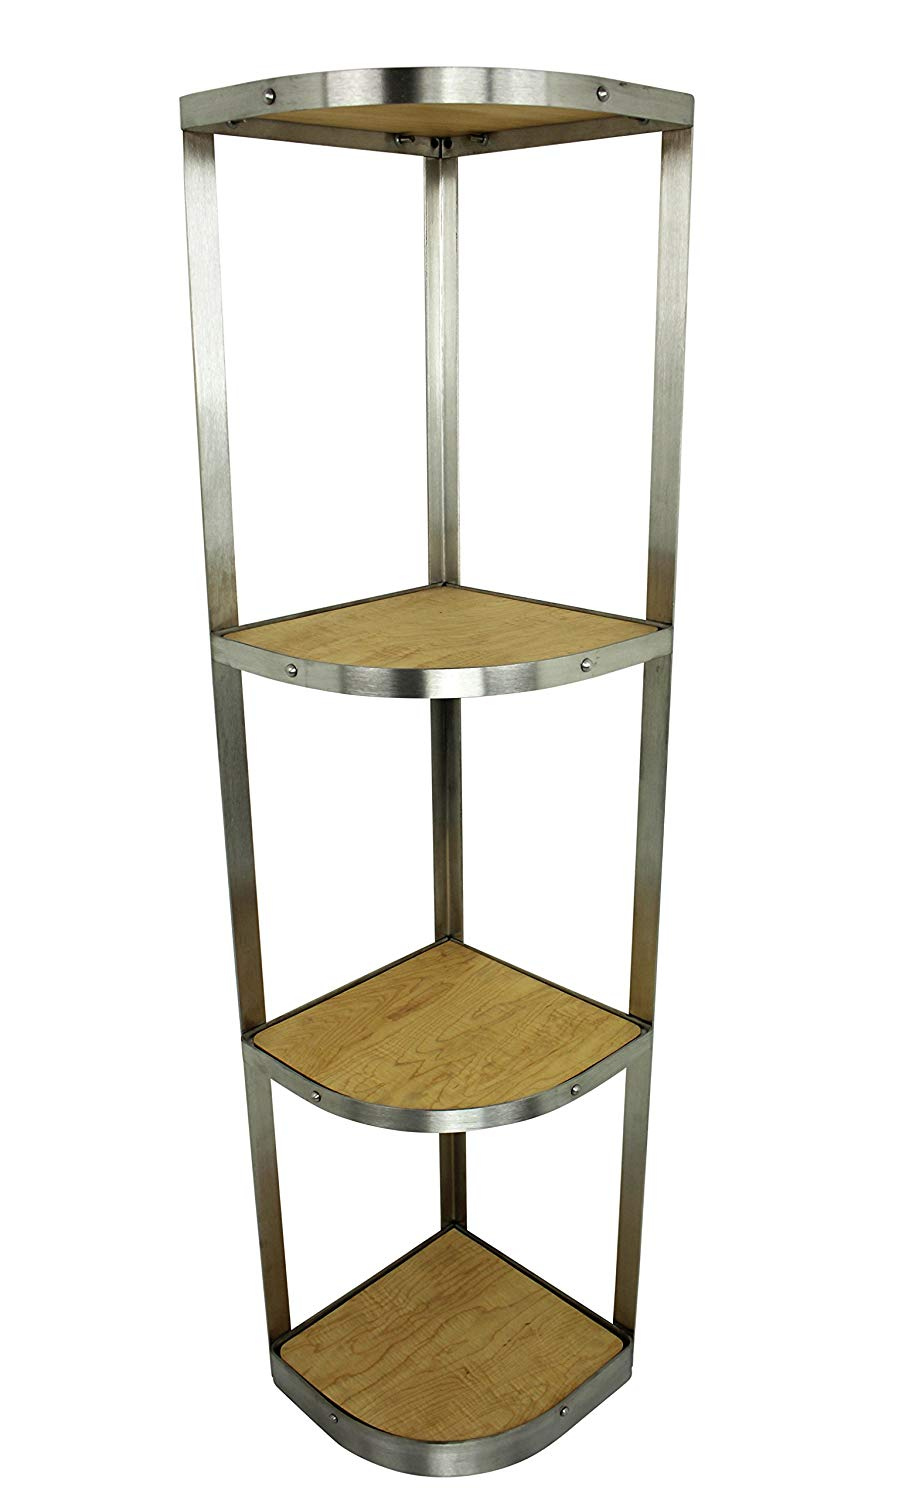 Handcrafted 4 Tier Corner Stand, Stainless Steel - Pot Racks Plus